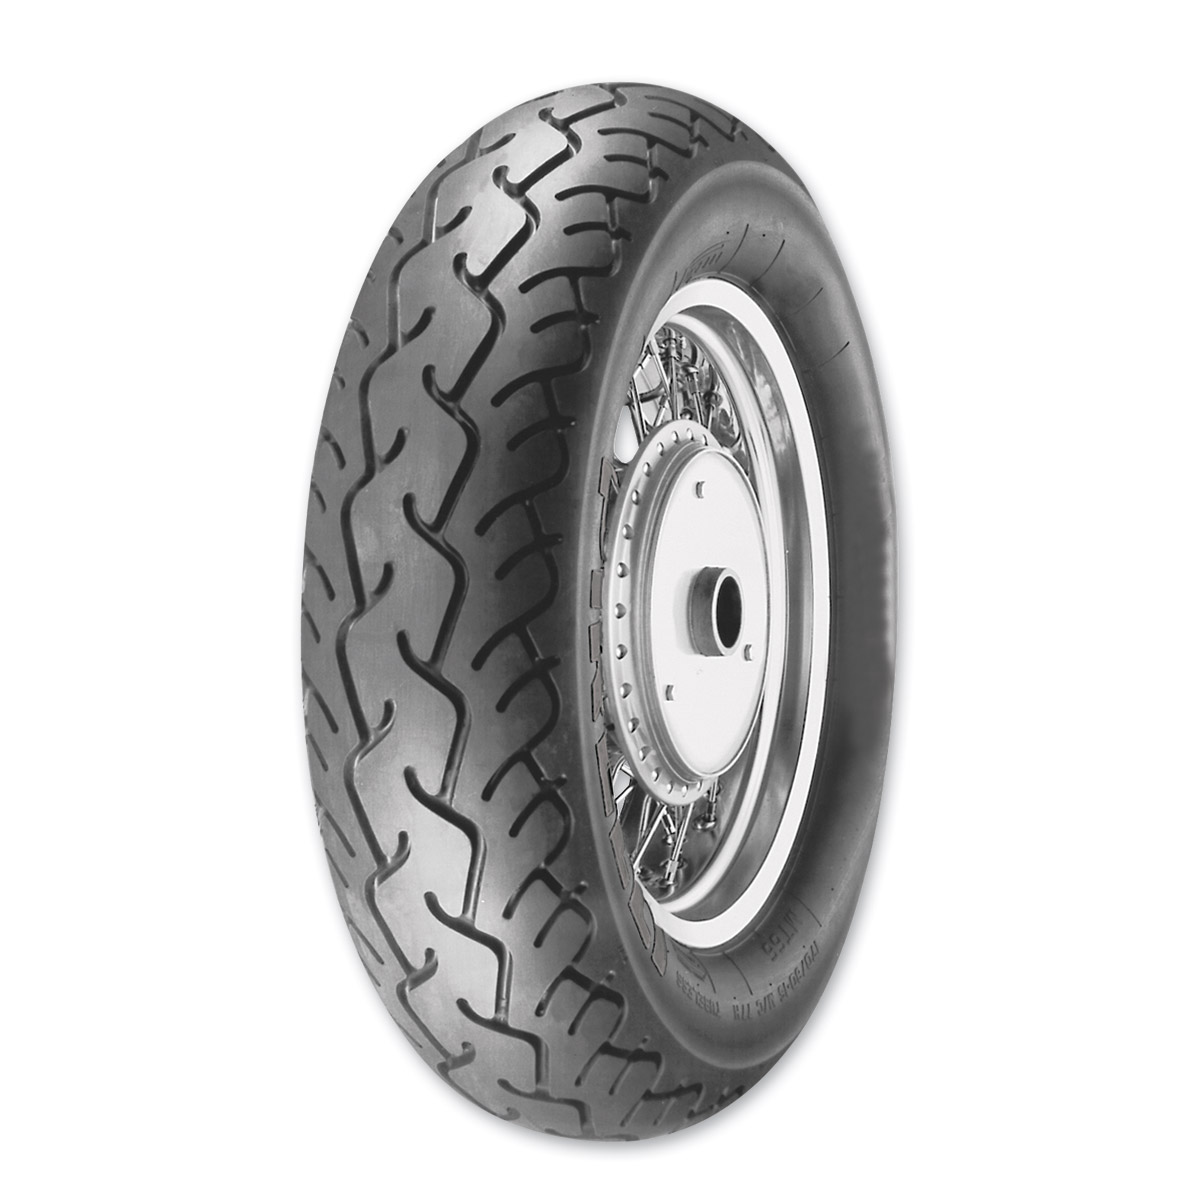 57S Pirelli MT66-Route Front Motorcycle Tire for Yamaha V-Star 650 Custom 1998-2011 100//90-19